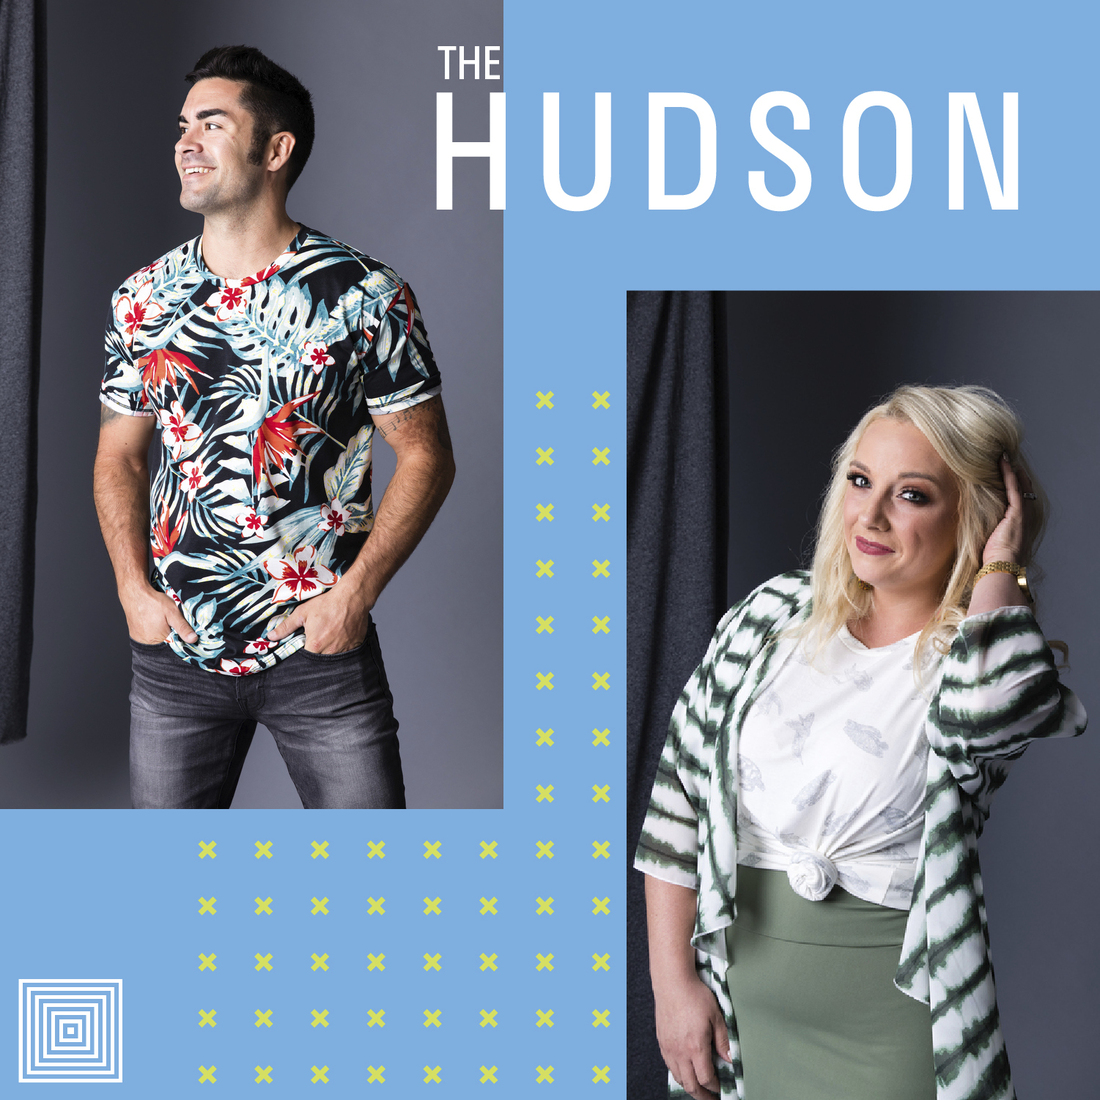 Lularoe Hudson Unisex Tee Direct Sales Party Plan And Network Marketing Companies Member Article By Lauren Burgess